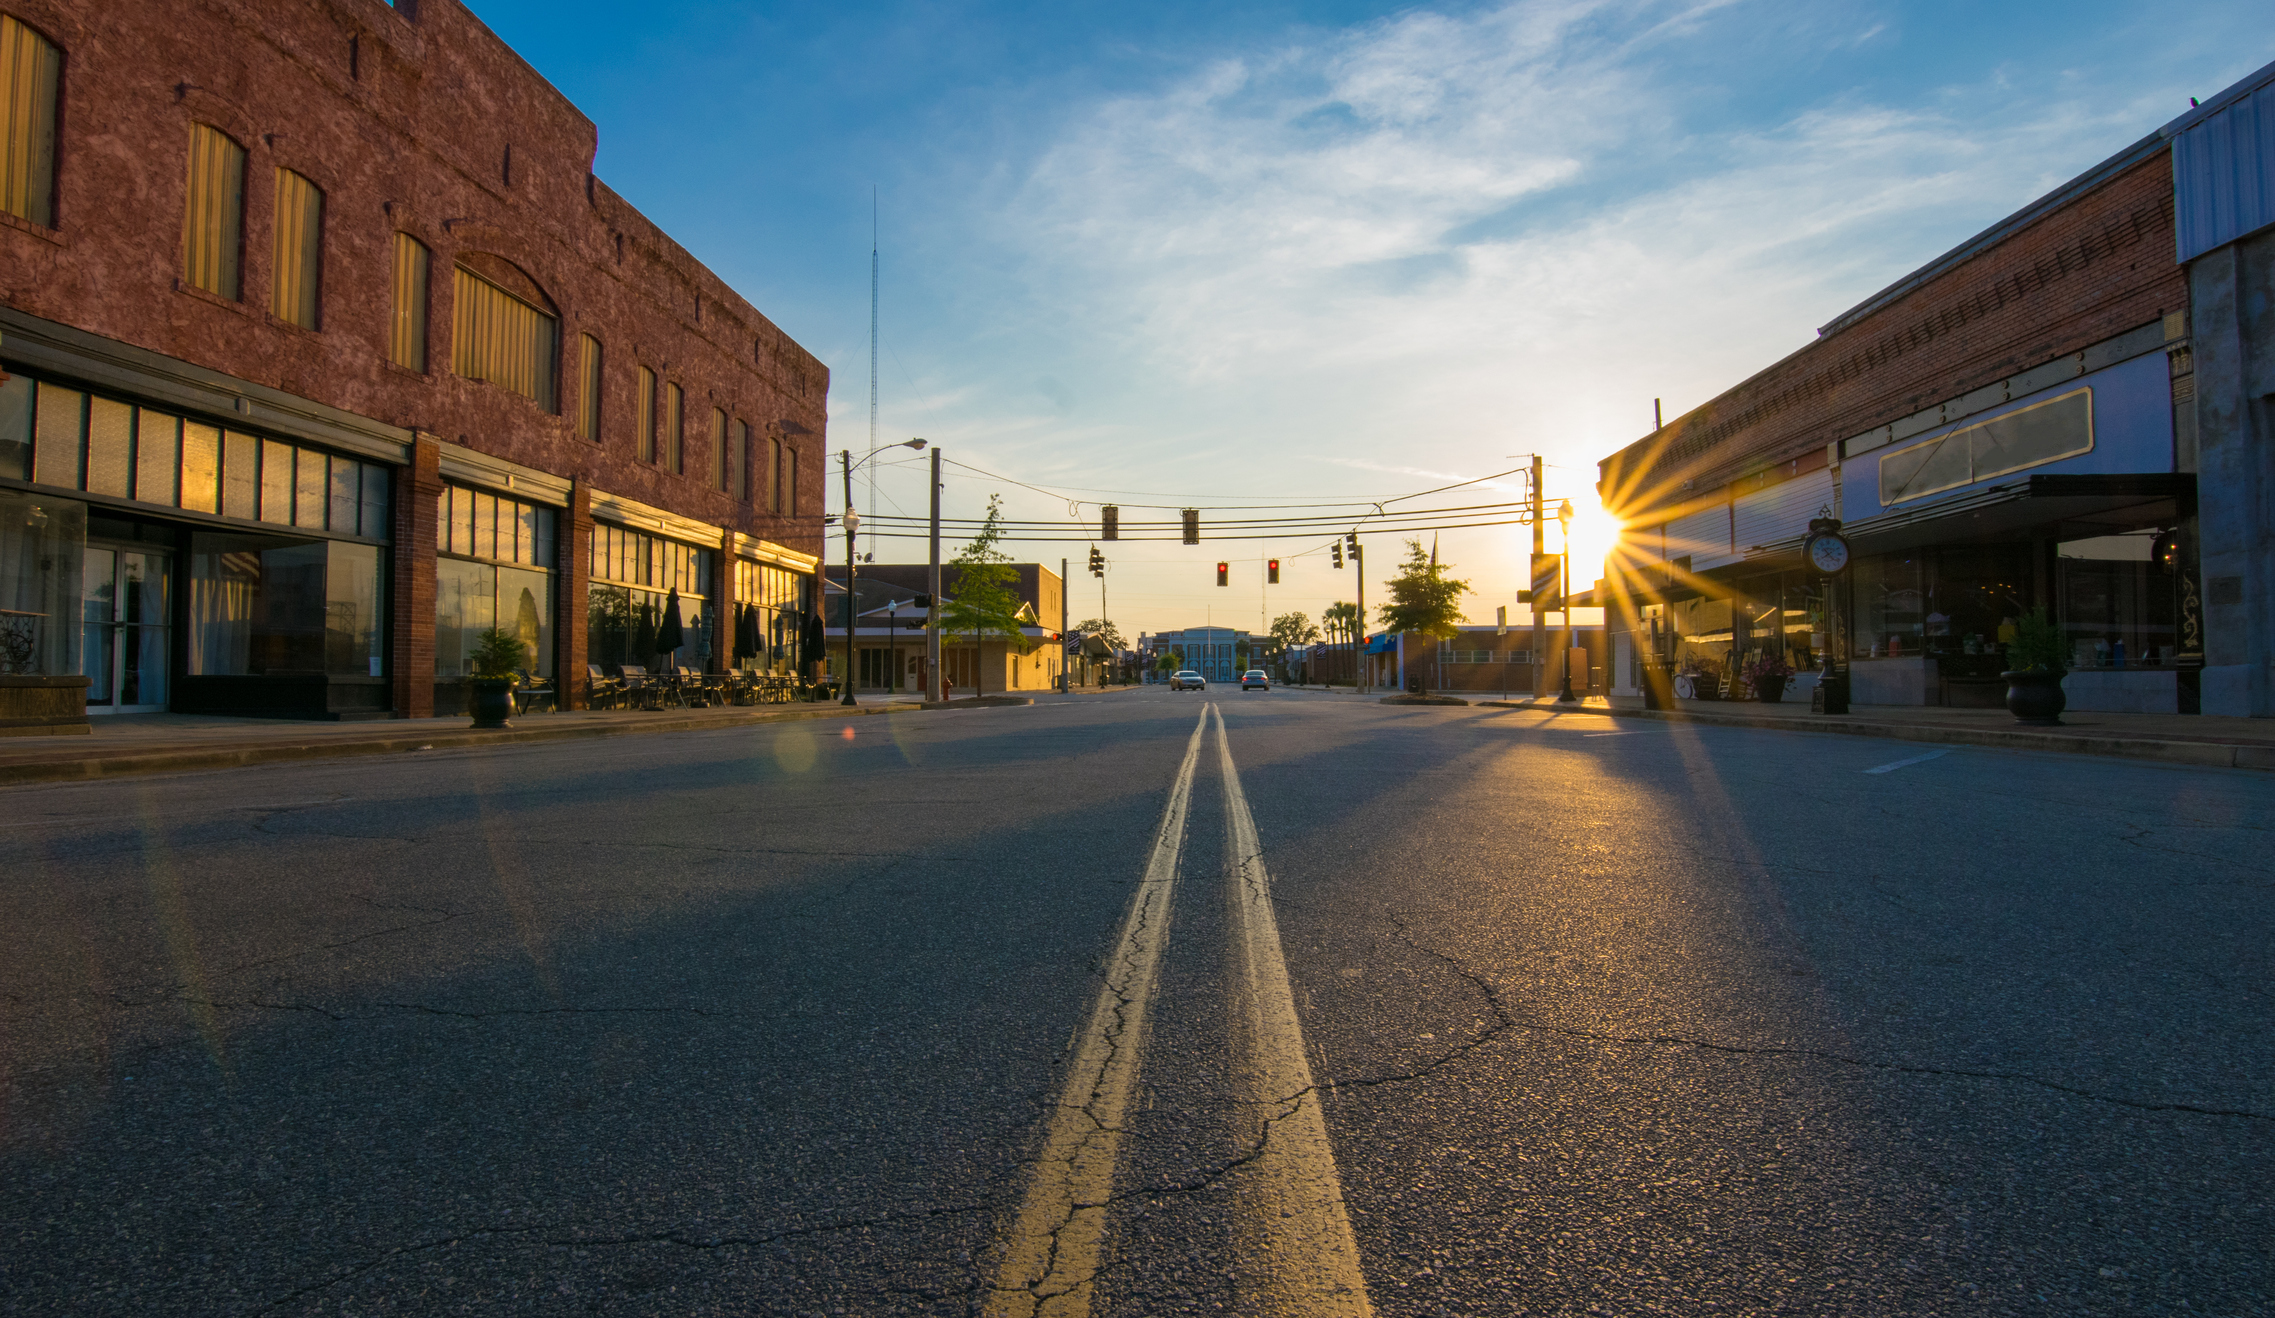 Storefronts at sunset in the middle of an empty road in downtown in a small town.